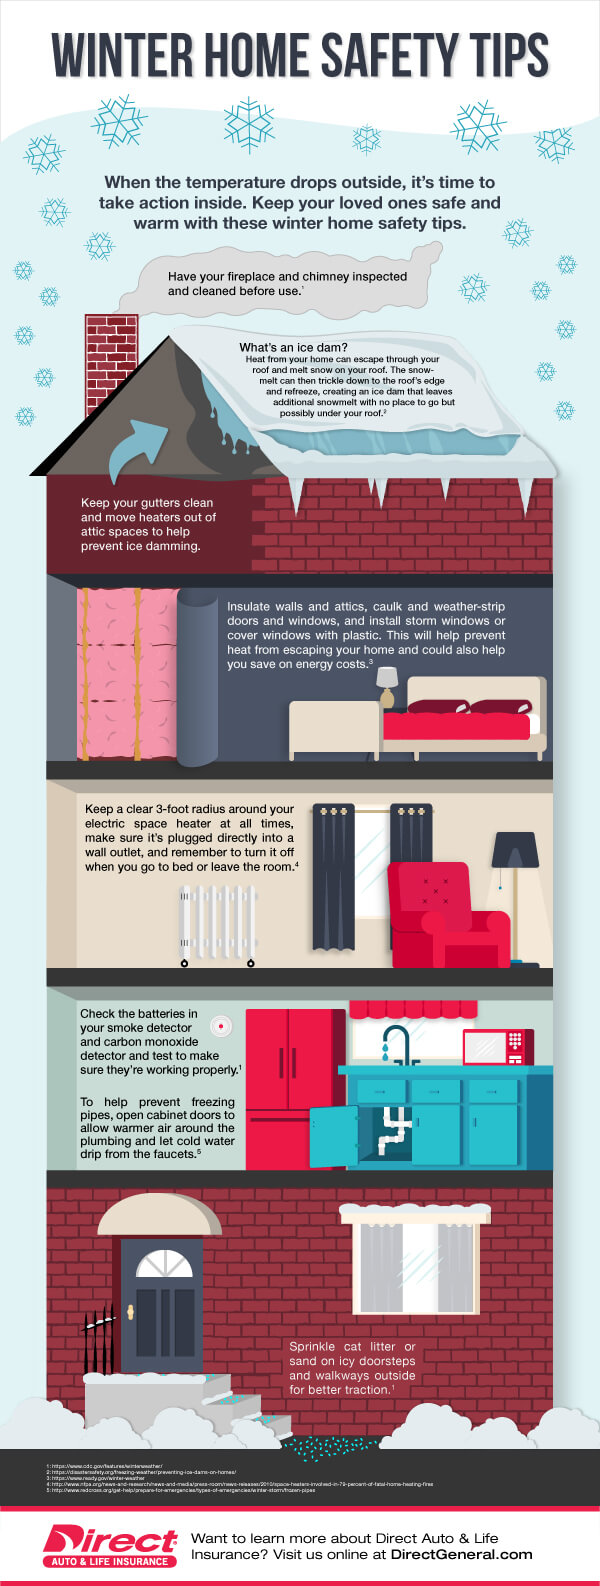 Winter Home Safety Tips Infographic